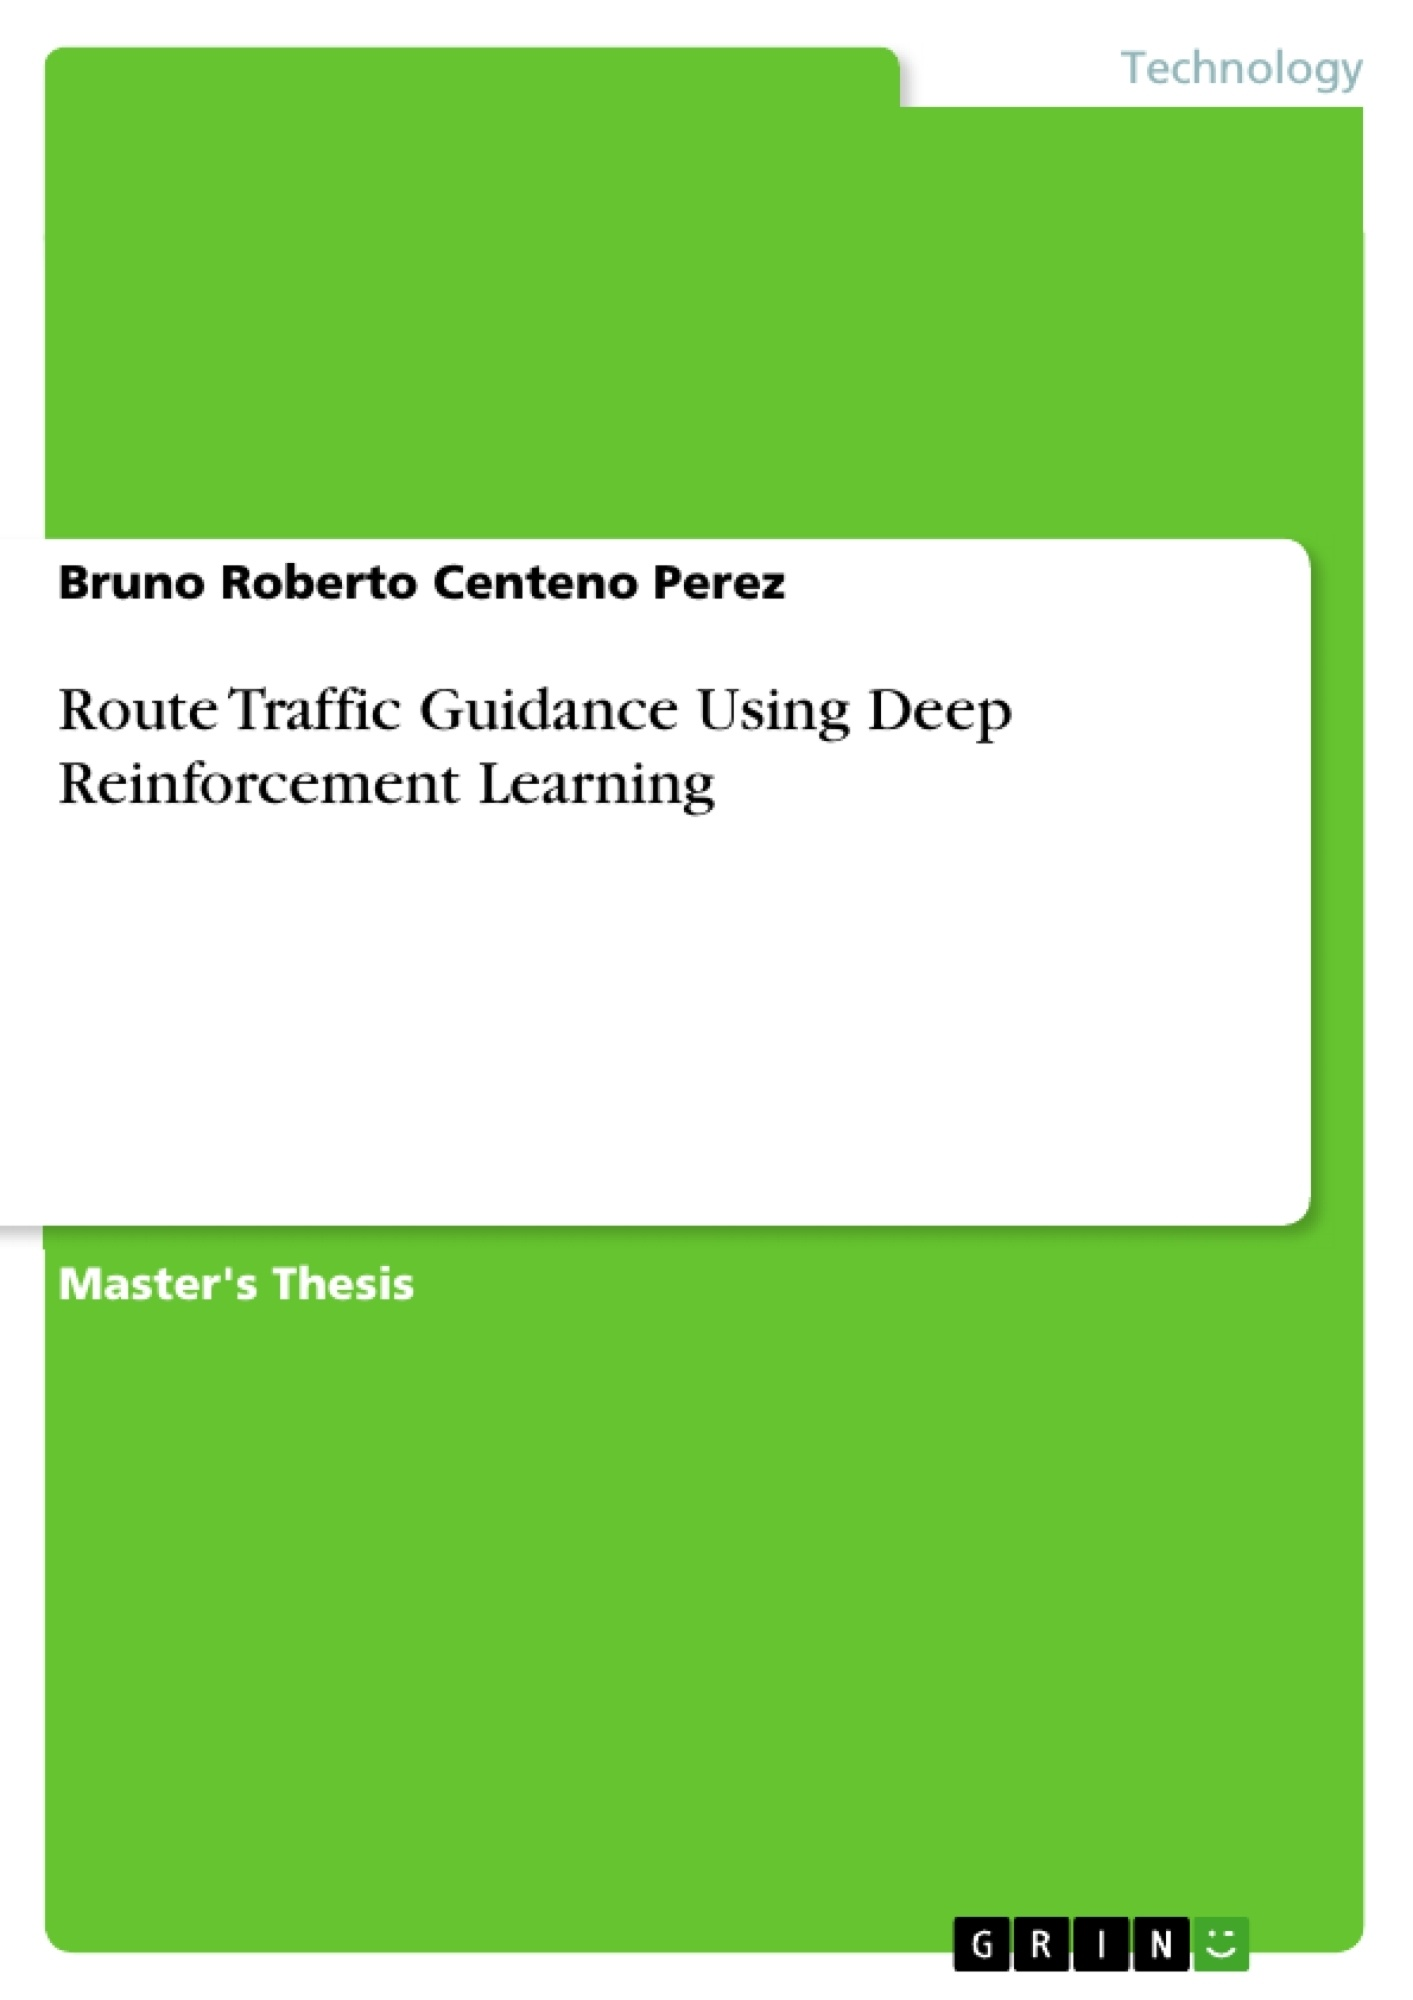 Title: Route Traffic Guidance Using Deep Reinforcement Learning